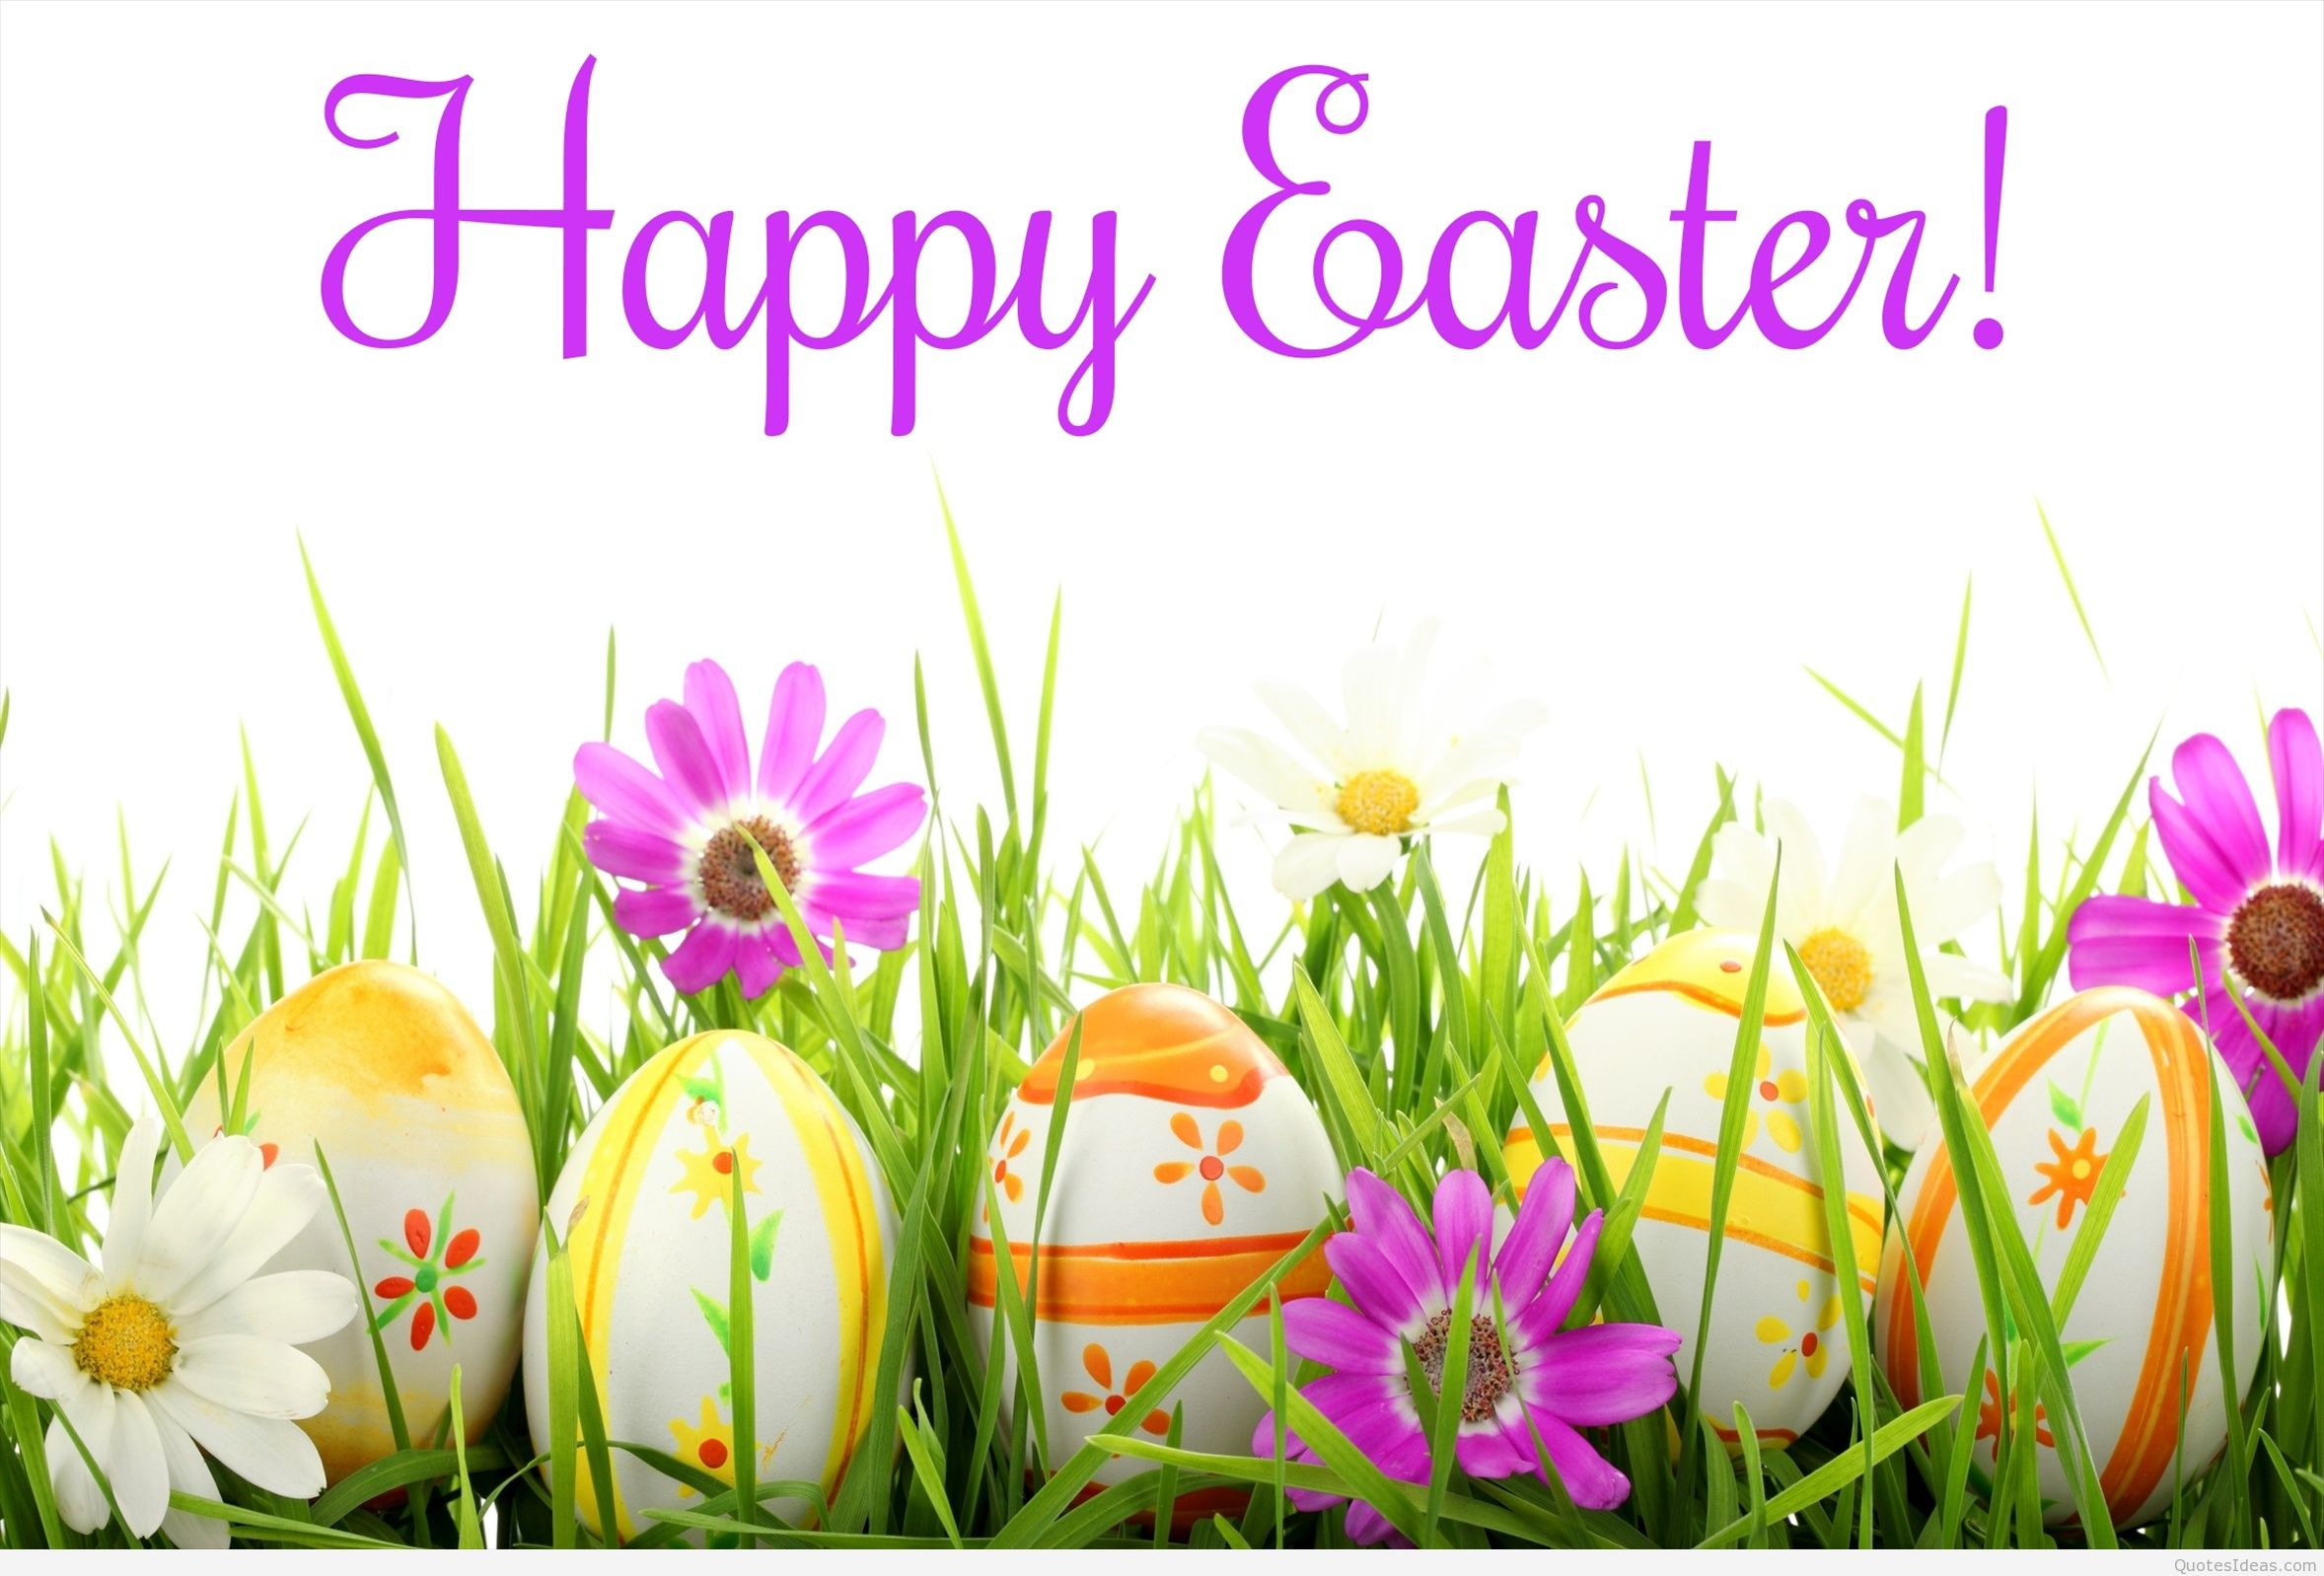 Happy Easter sunday wallpapers hd wishes 2356x1598